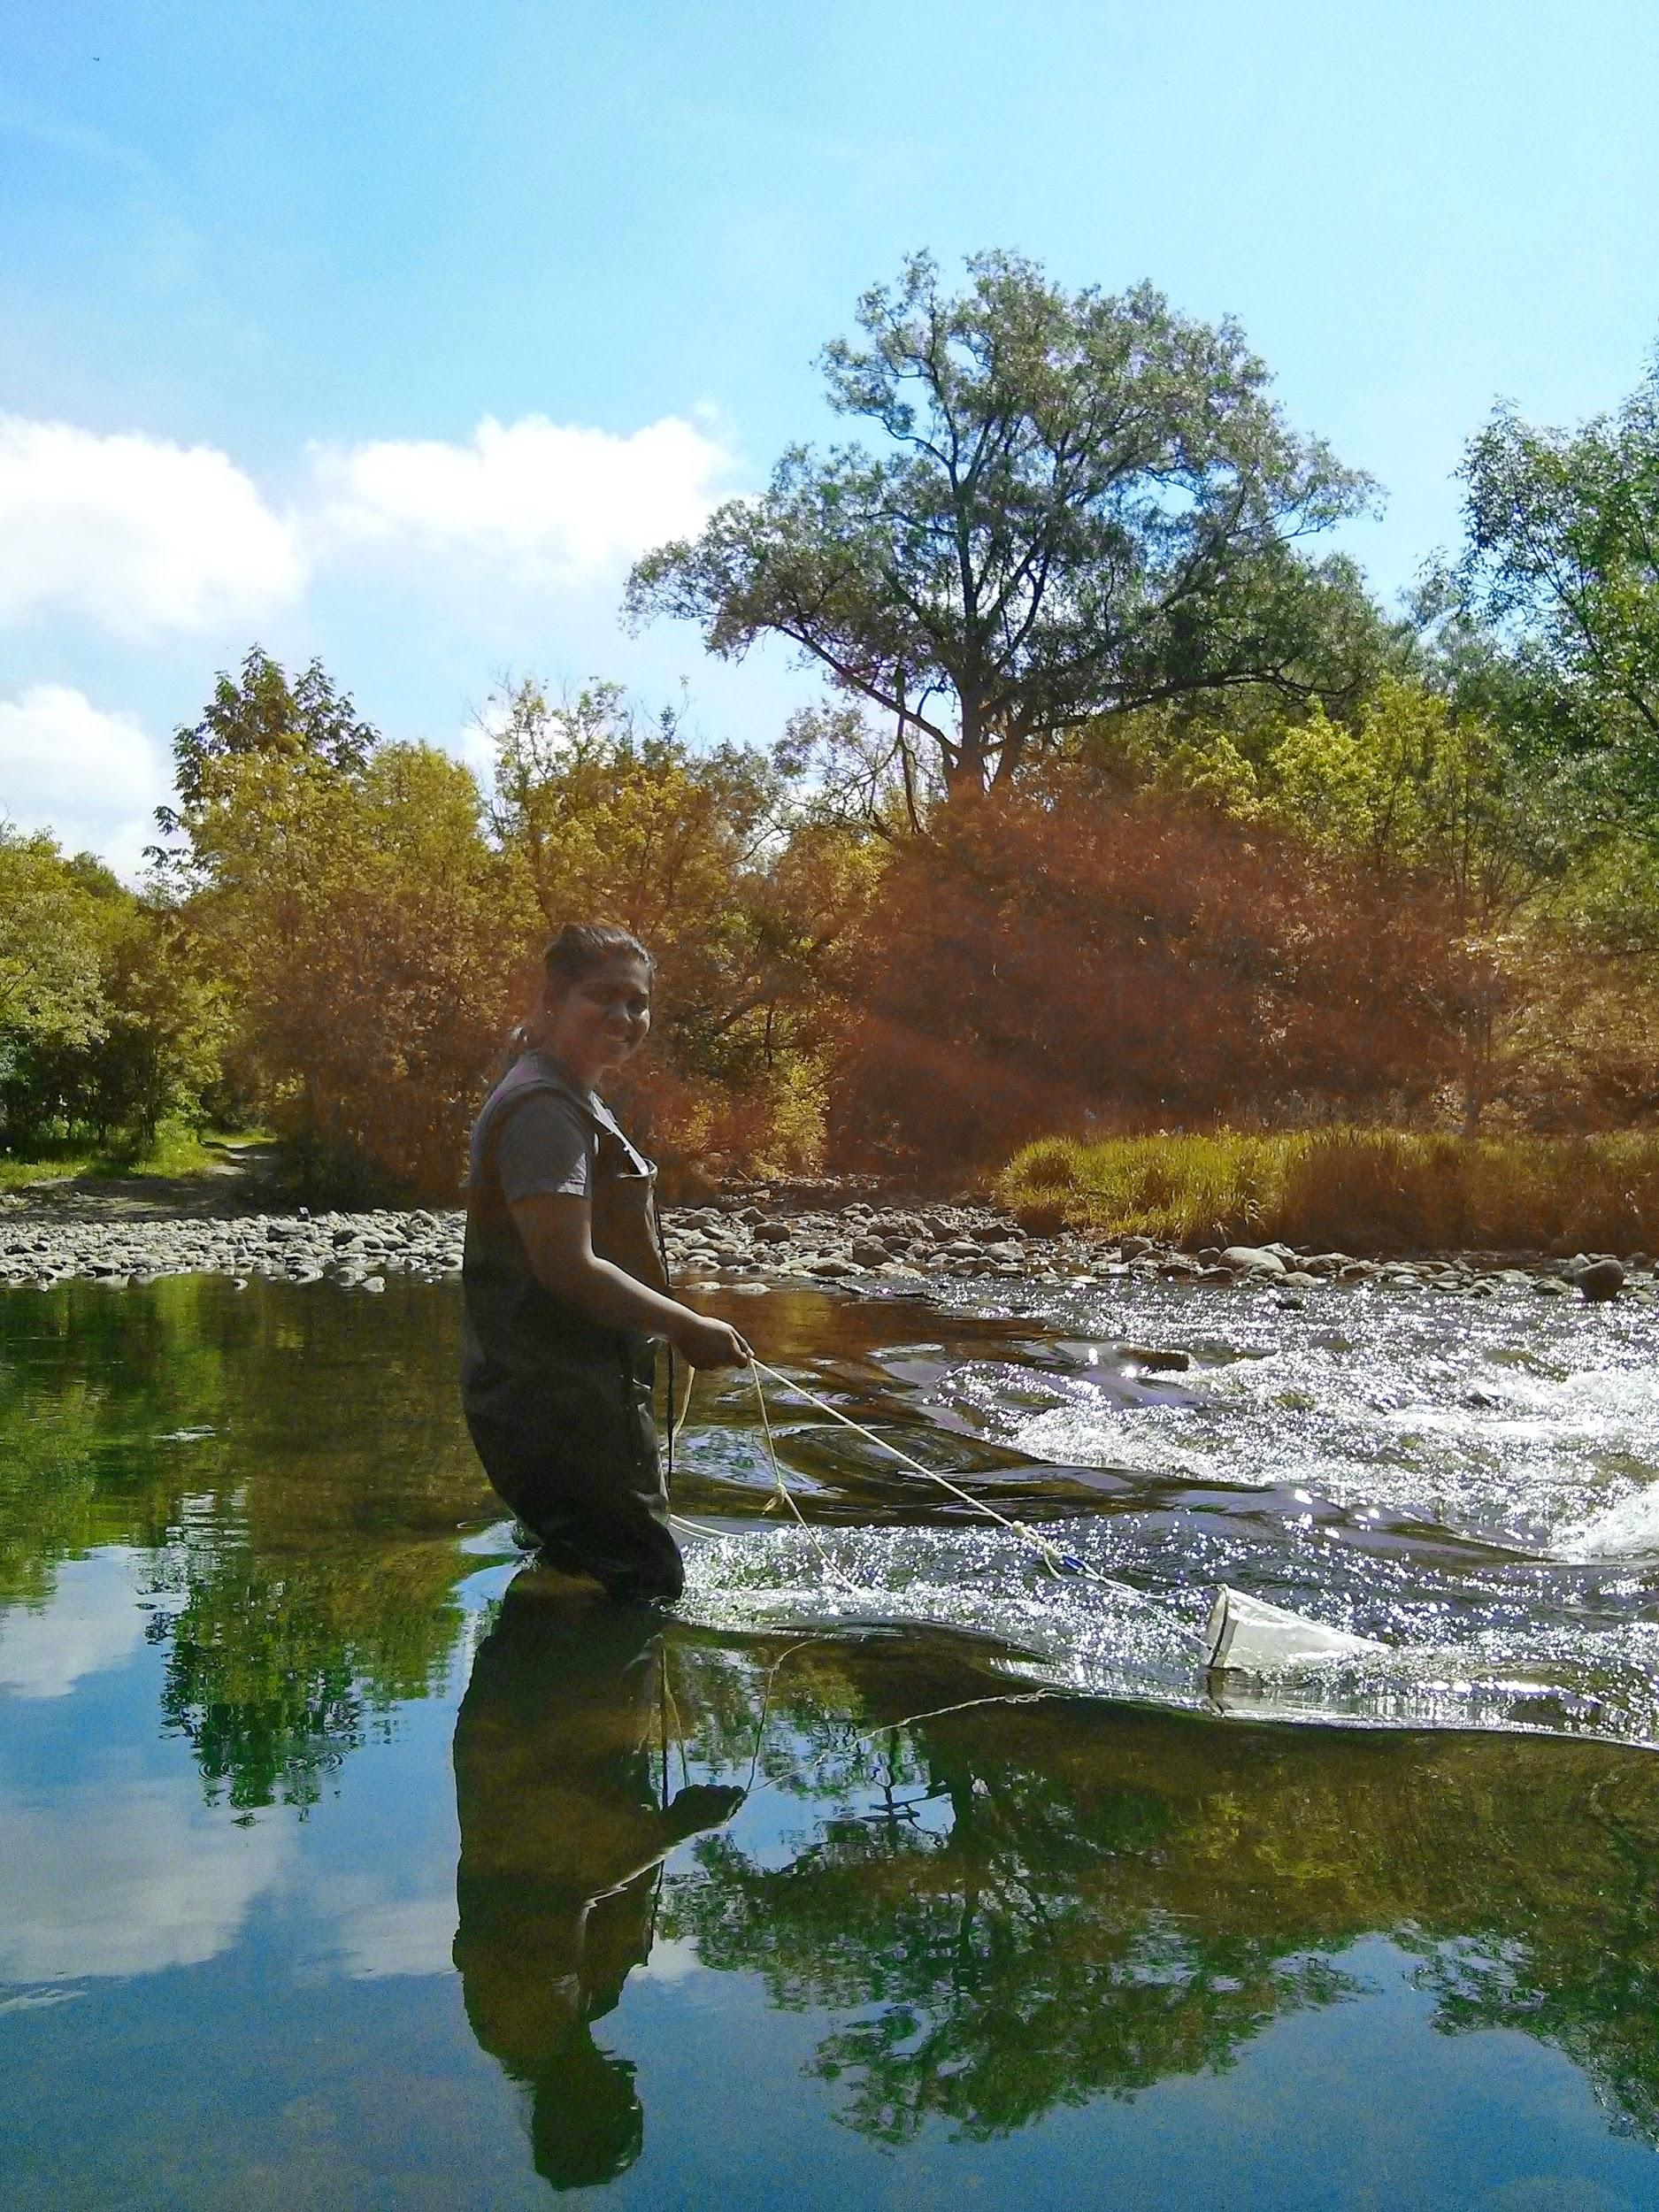 Kareina acquiring a plankton sample with the plankton tow net in flowing water at the Speed River collecting site - Crane Park, Guelph, Ontario.